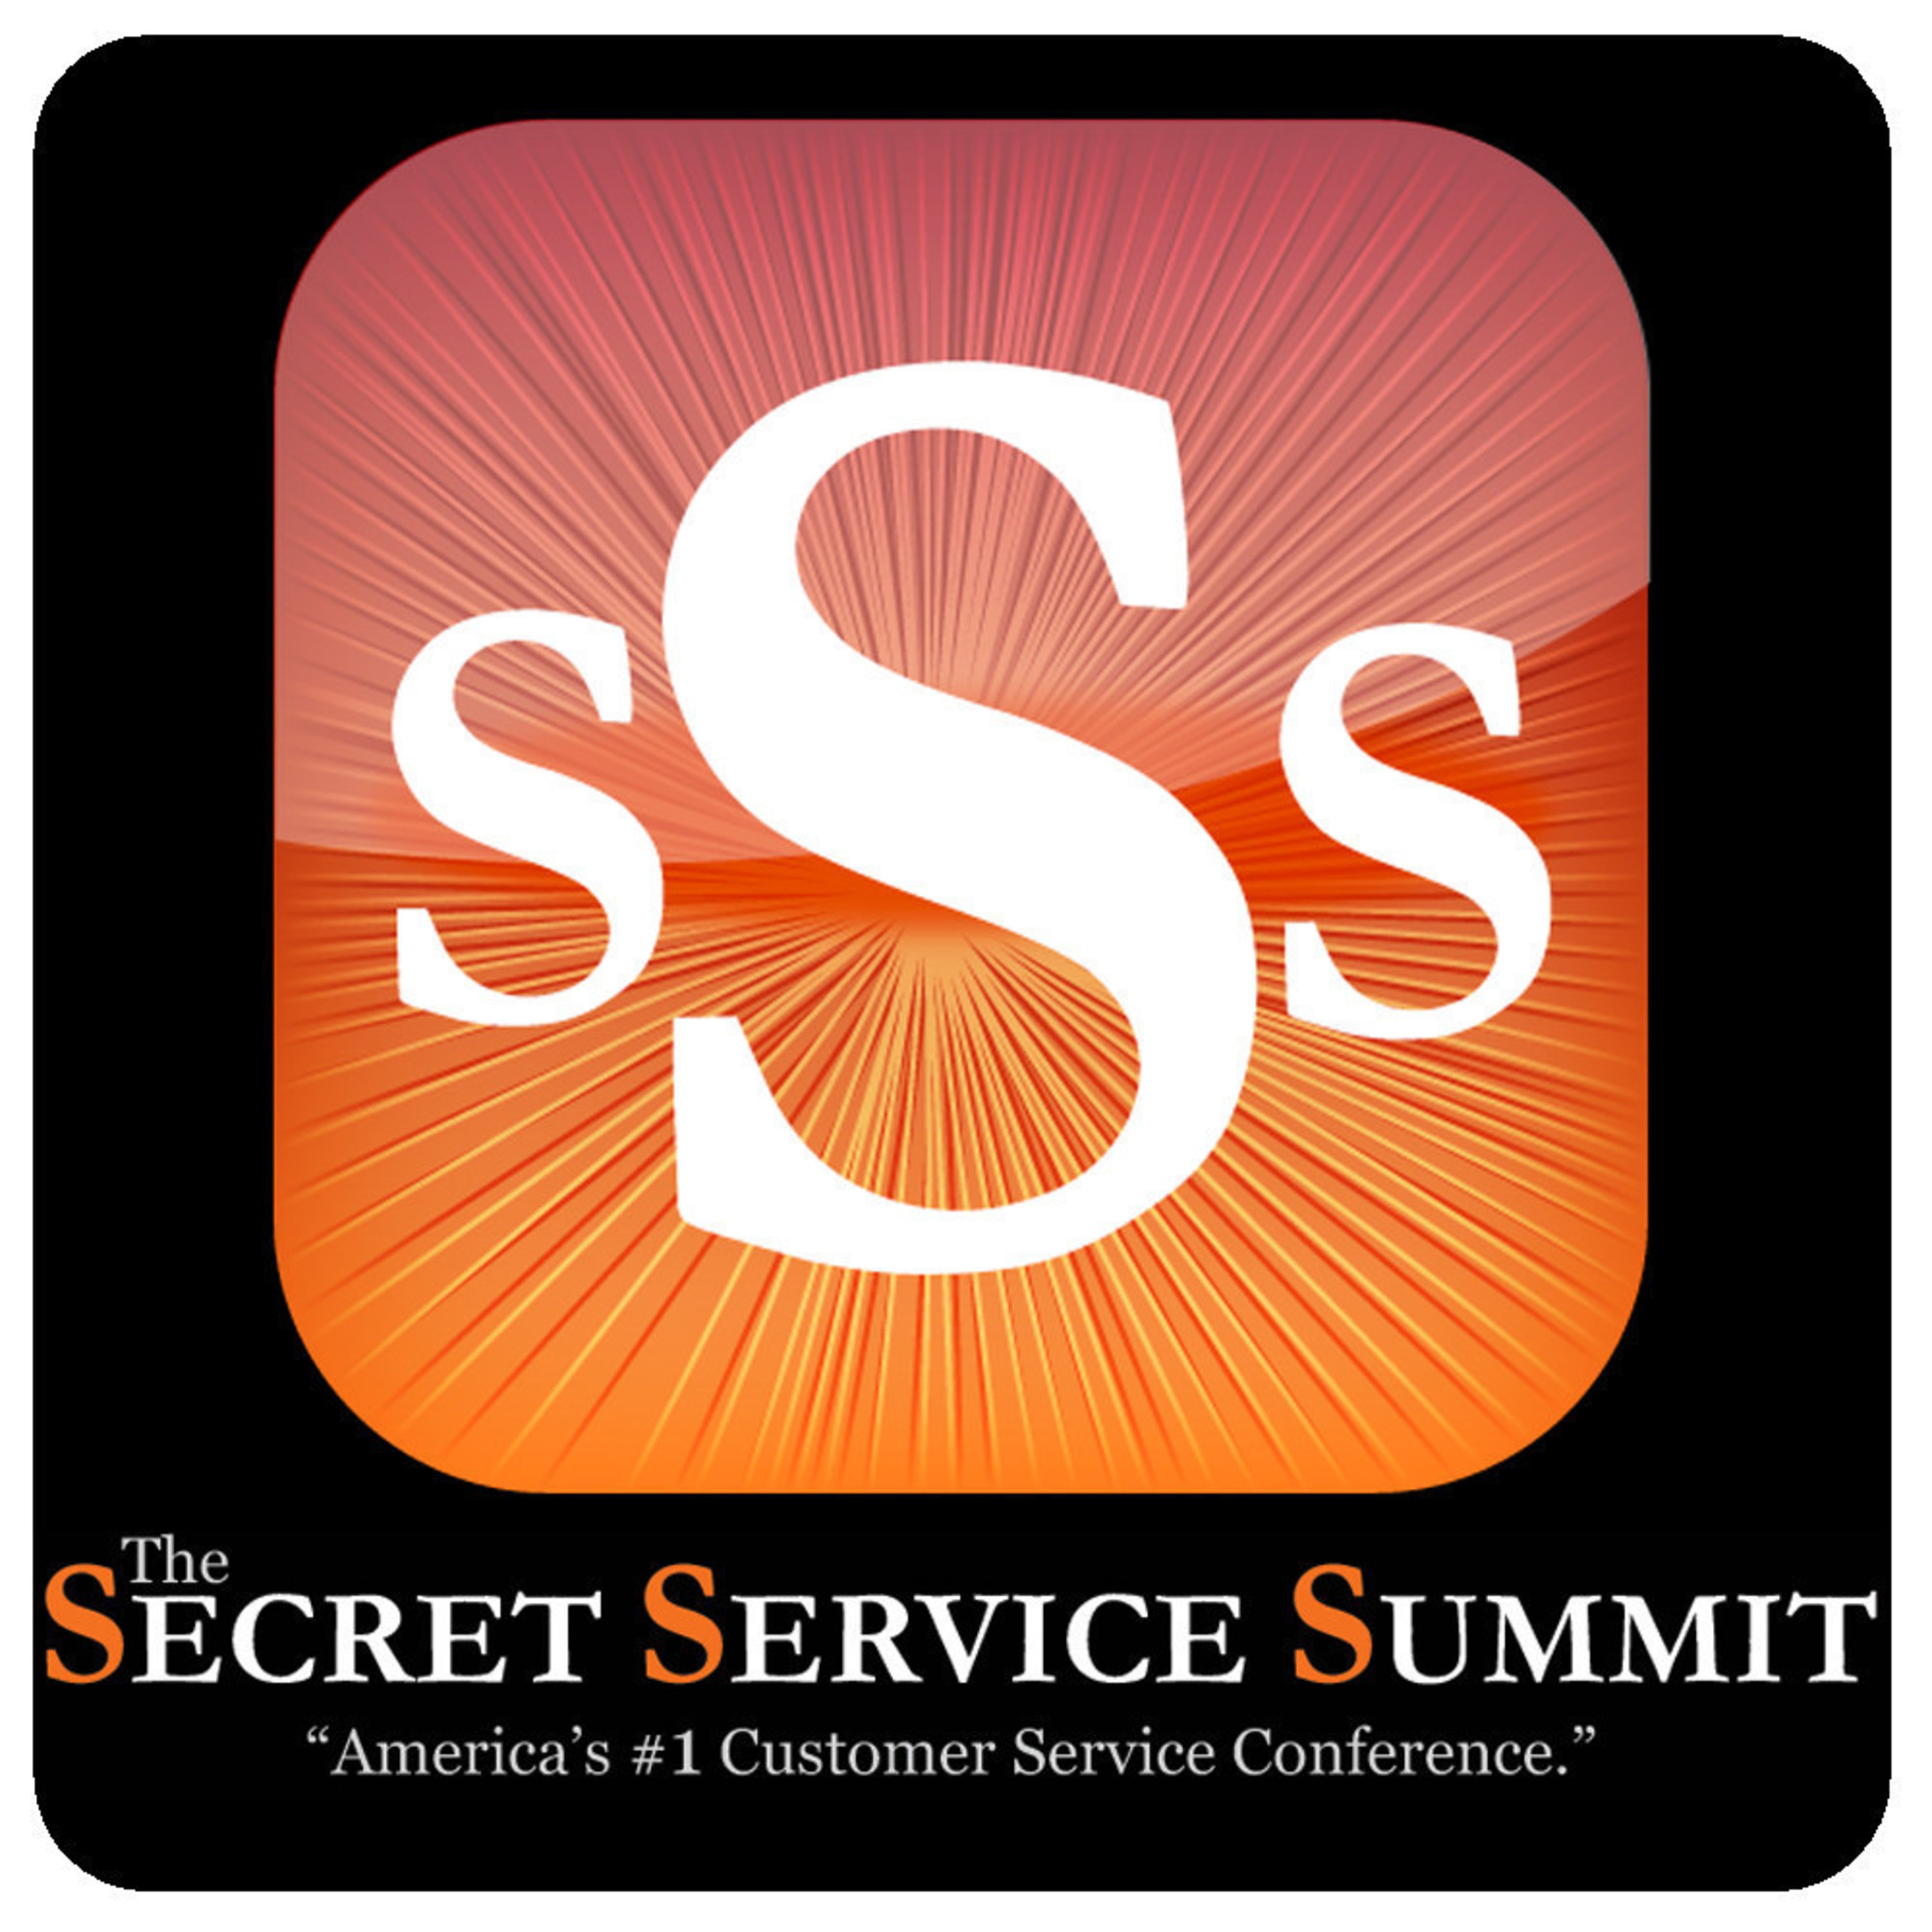 Learn more at secretservicesummit.com